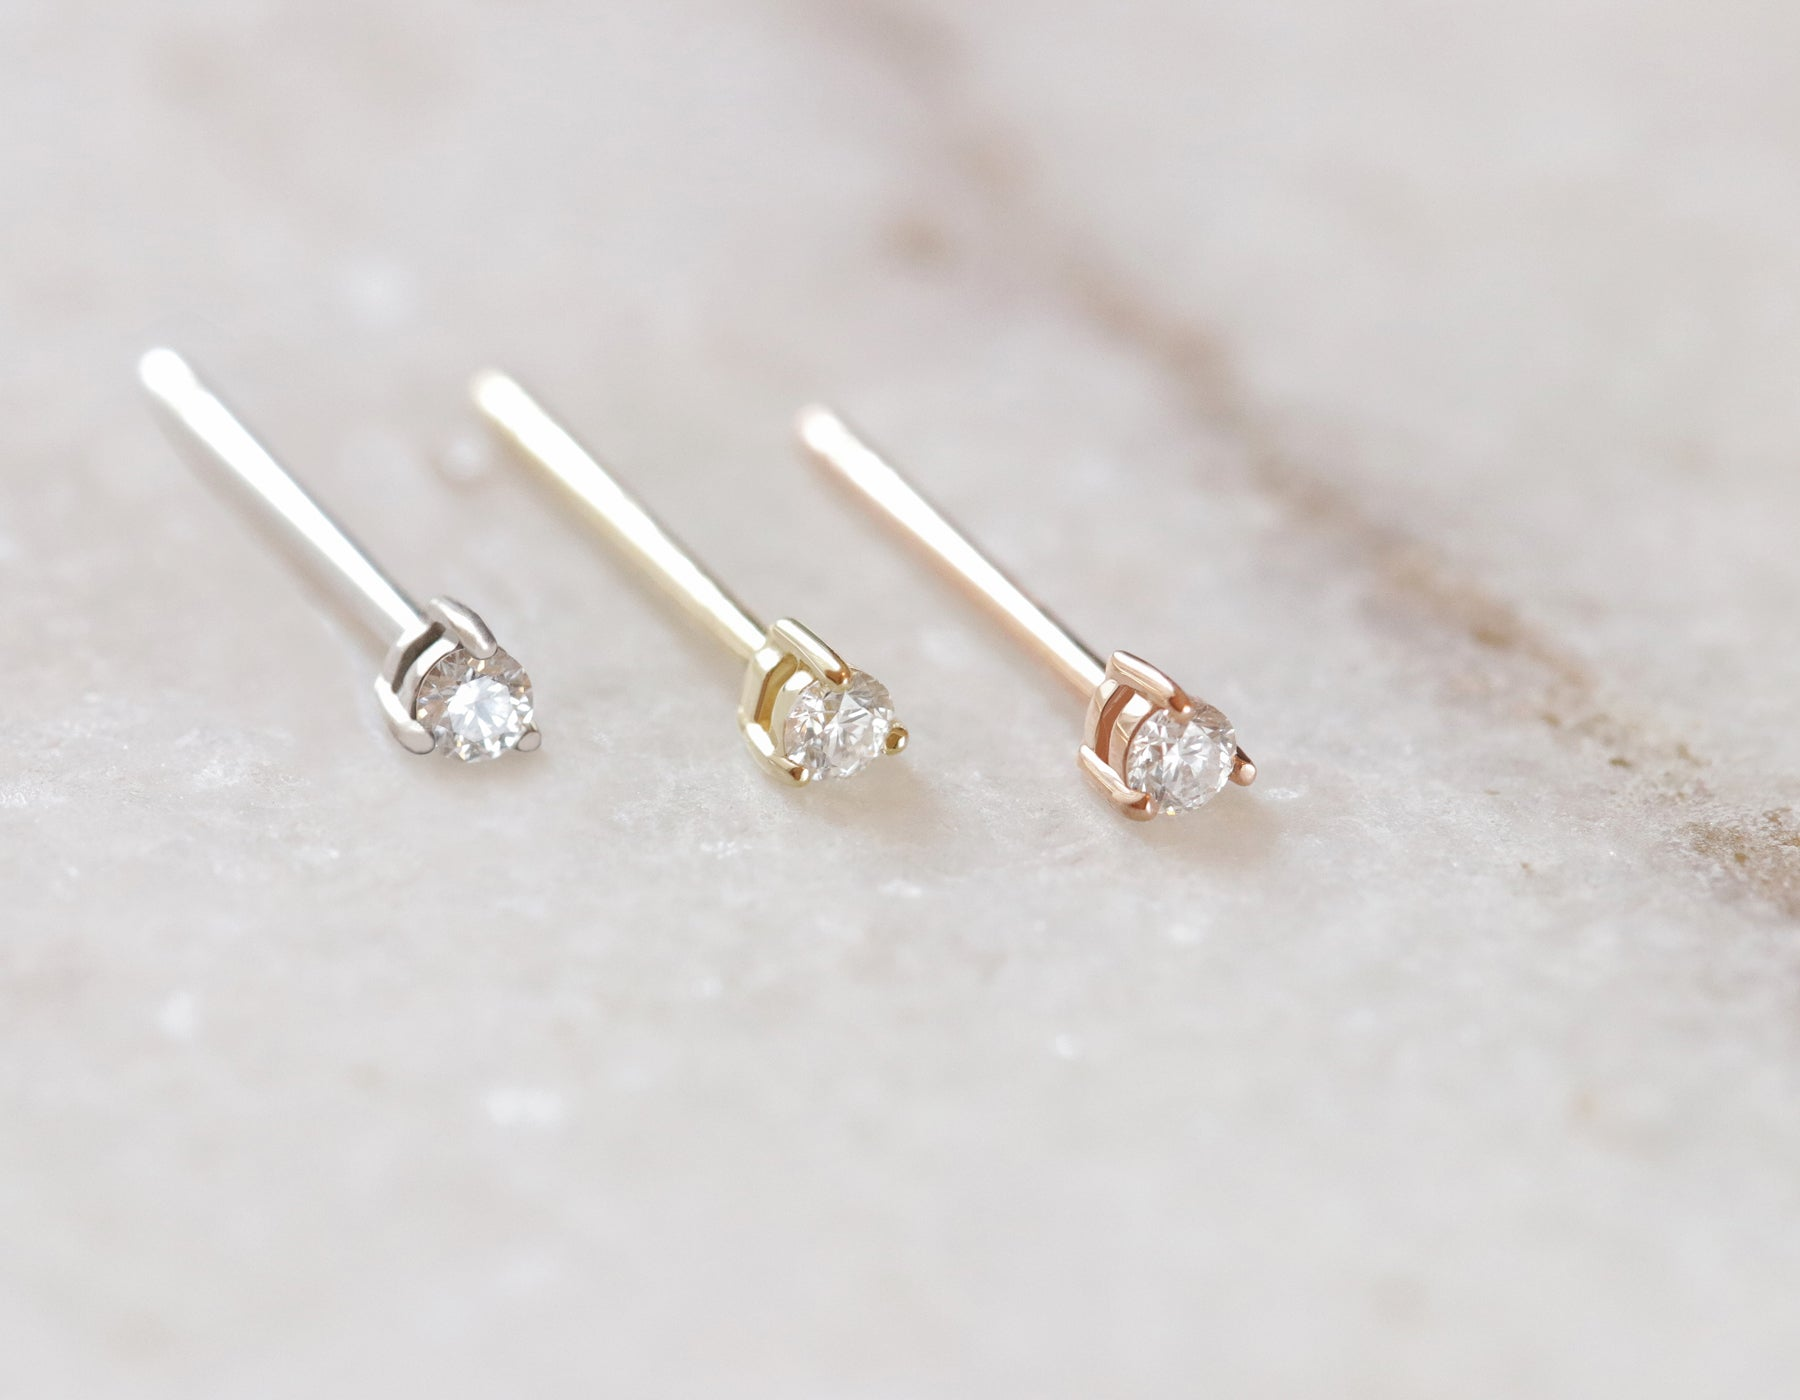 Tiny Diamond Studs 14k yellow gold rose gold white gold post earrings baby  diamond Vrai   7a20e2fd1